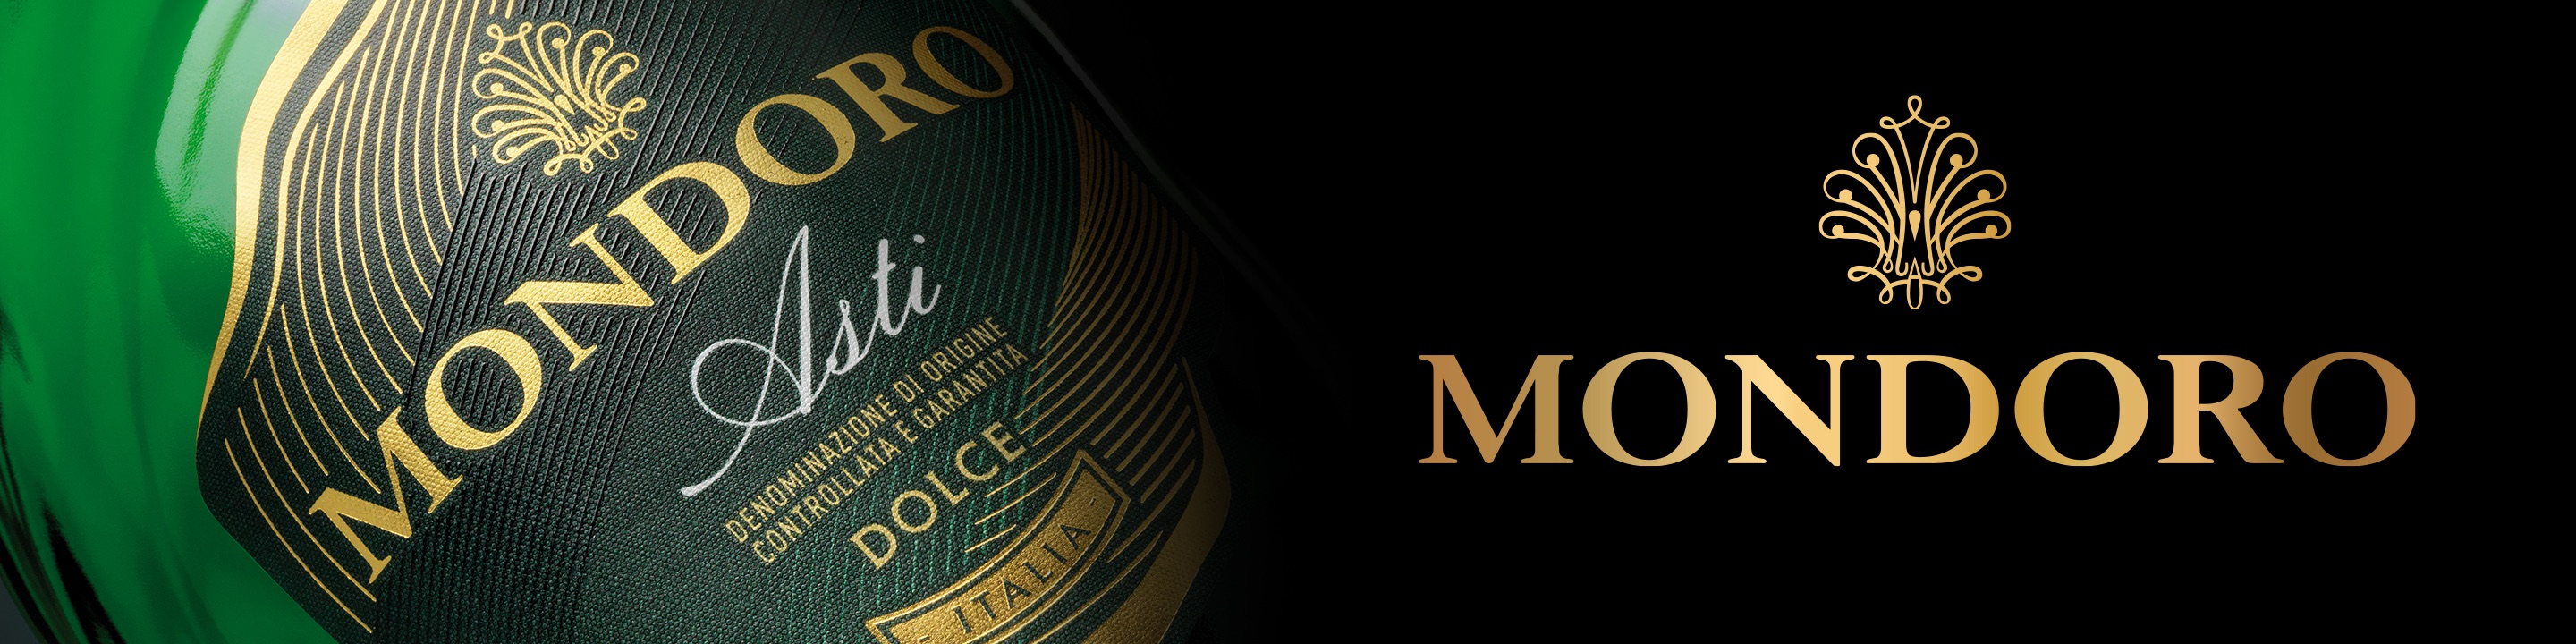 Mondoro is an Italian superior quality sparkling wine range. Its elegant taste and prestigious, sensual bottle design are a symbol of taste and style. Through the years, Mondoro has won more gold medals for taste and quality than any other Asti. Its 11 golds, 11 silvers and 12 bronzes make it the most highly acclaimed of all Italian sparkling wines – and reinforce its position as the world's finest Asti. Buy Mondoro online now from nearby liquor stores via Minibar Delivery.